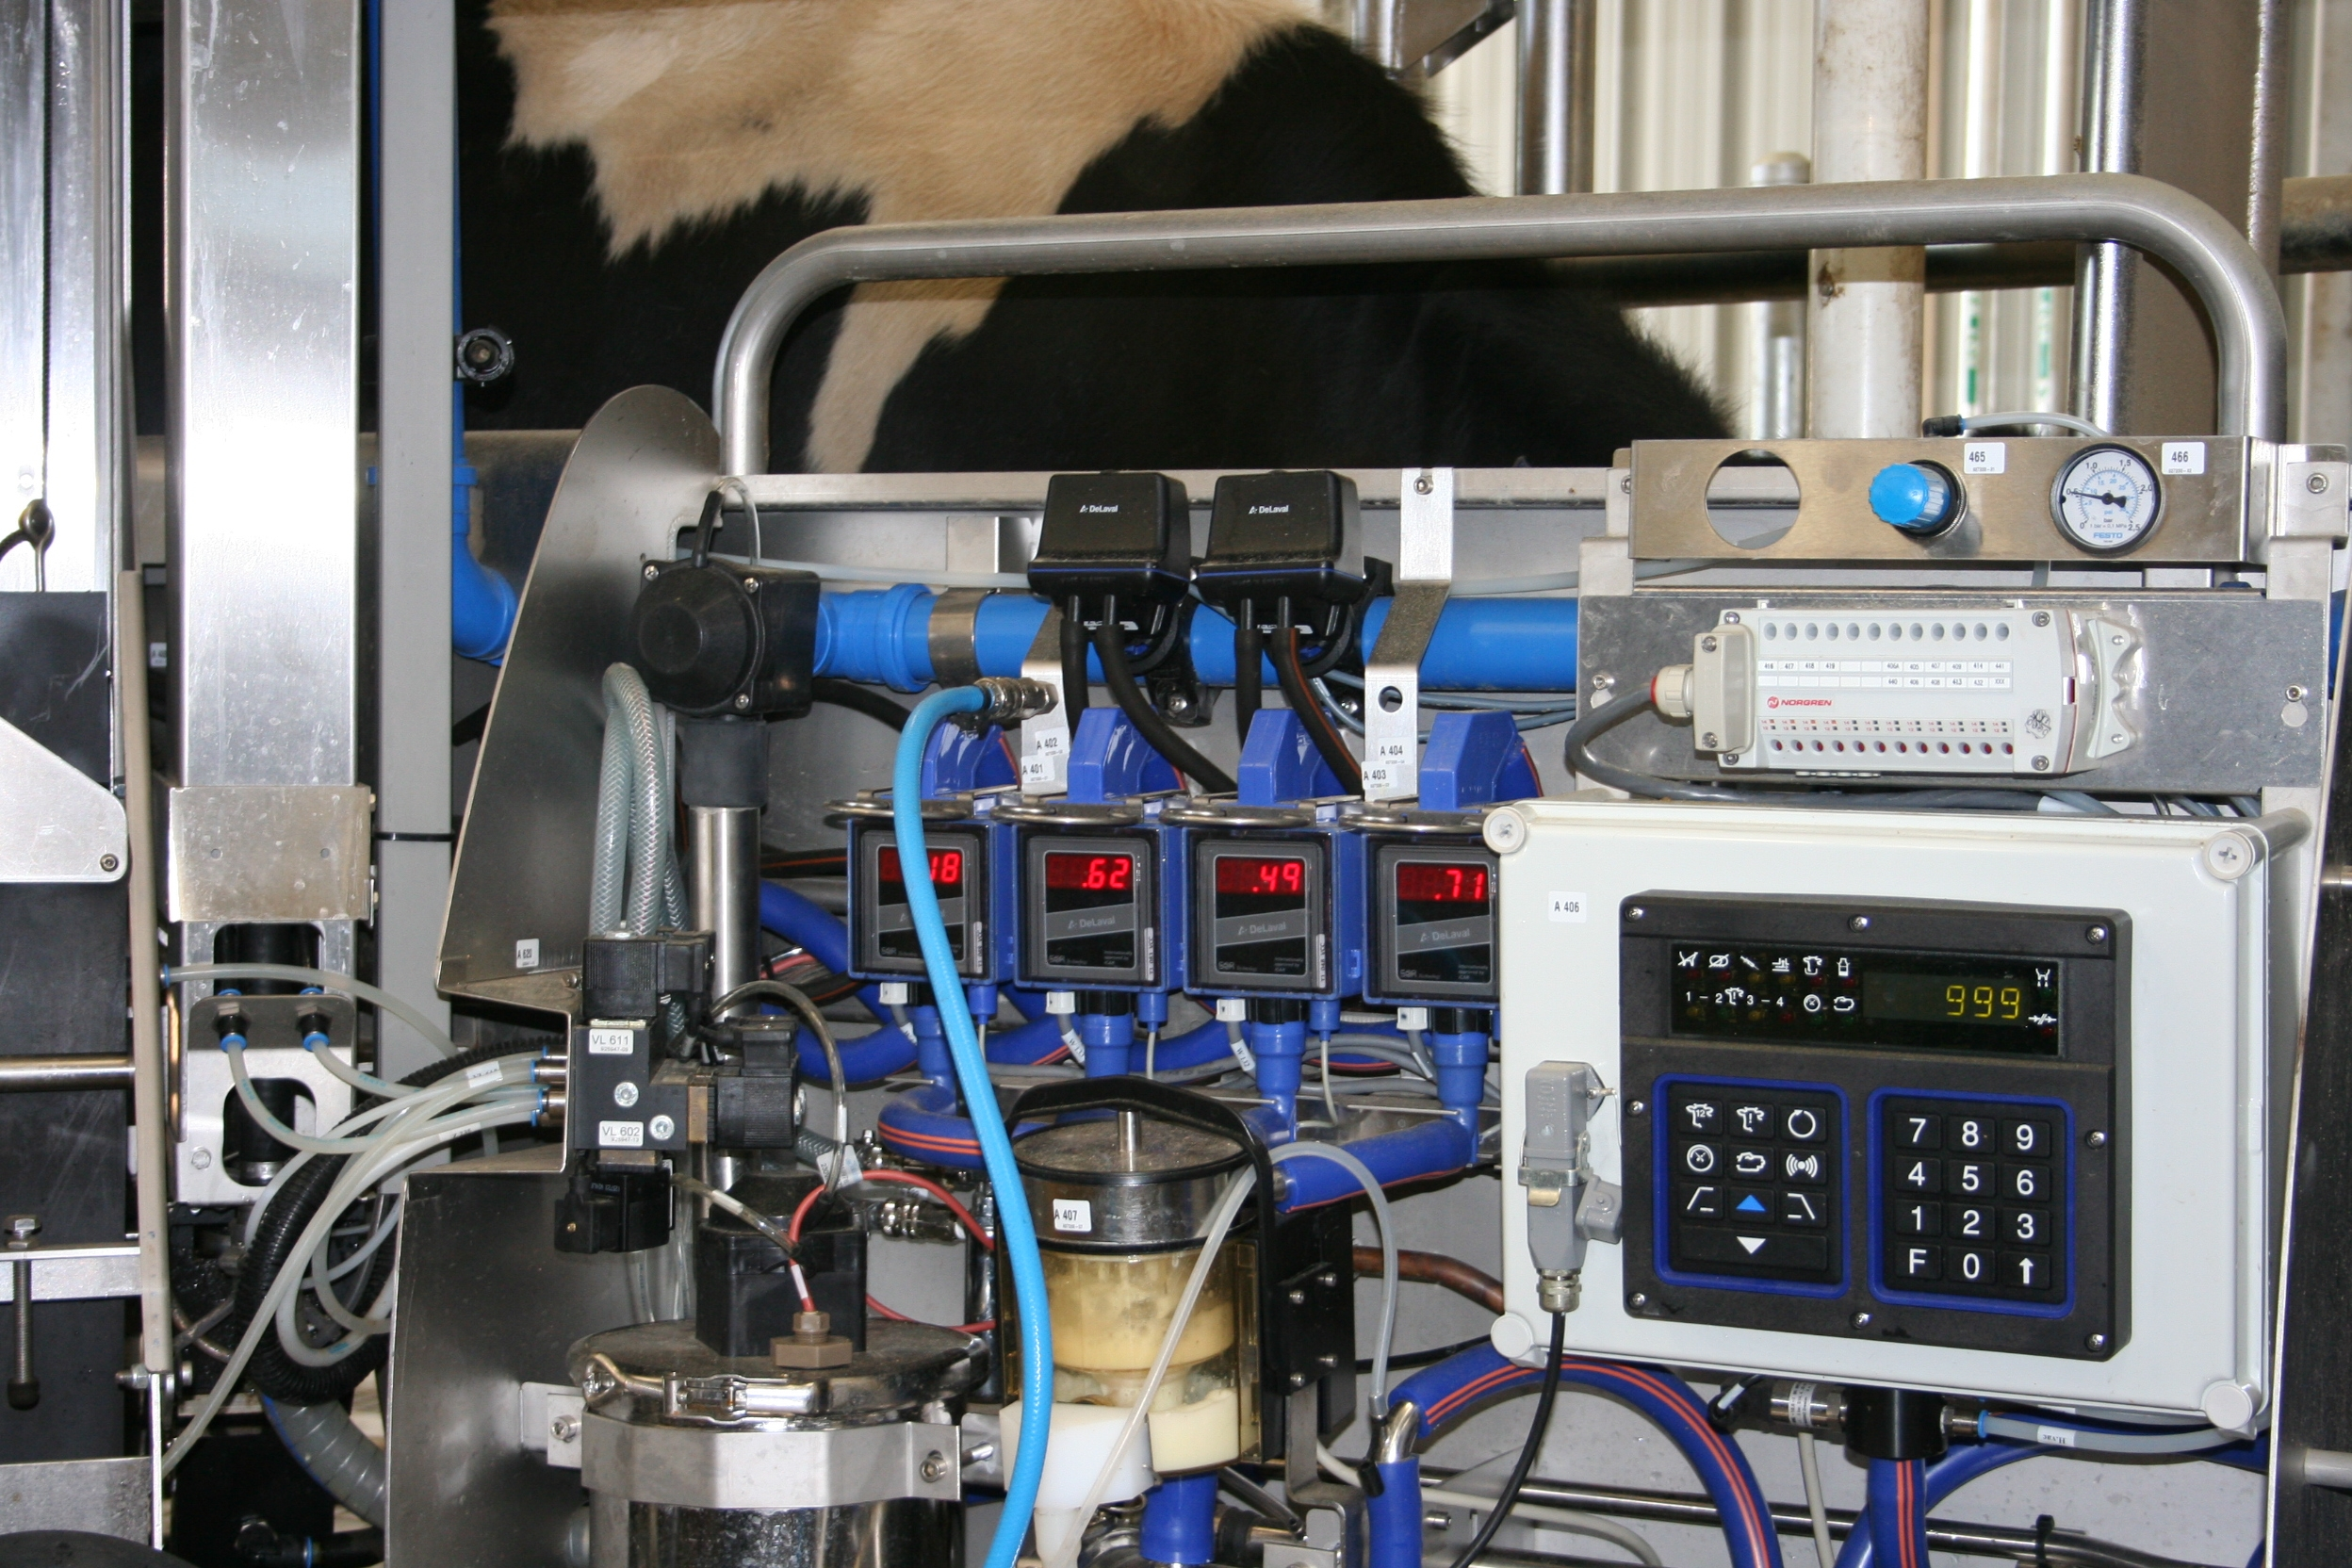 Technology in a robotic dairy